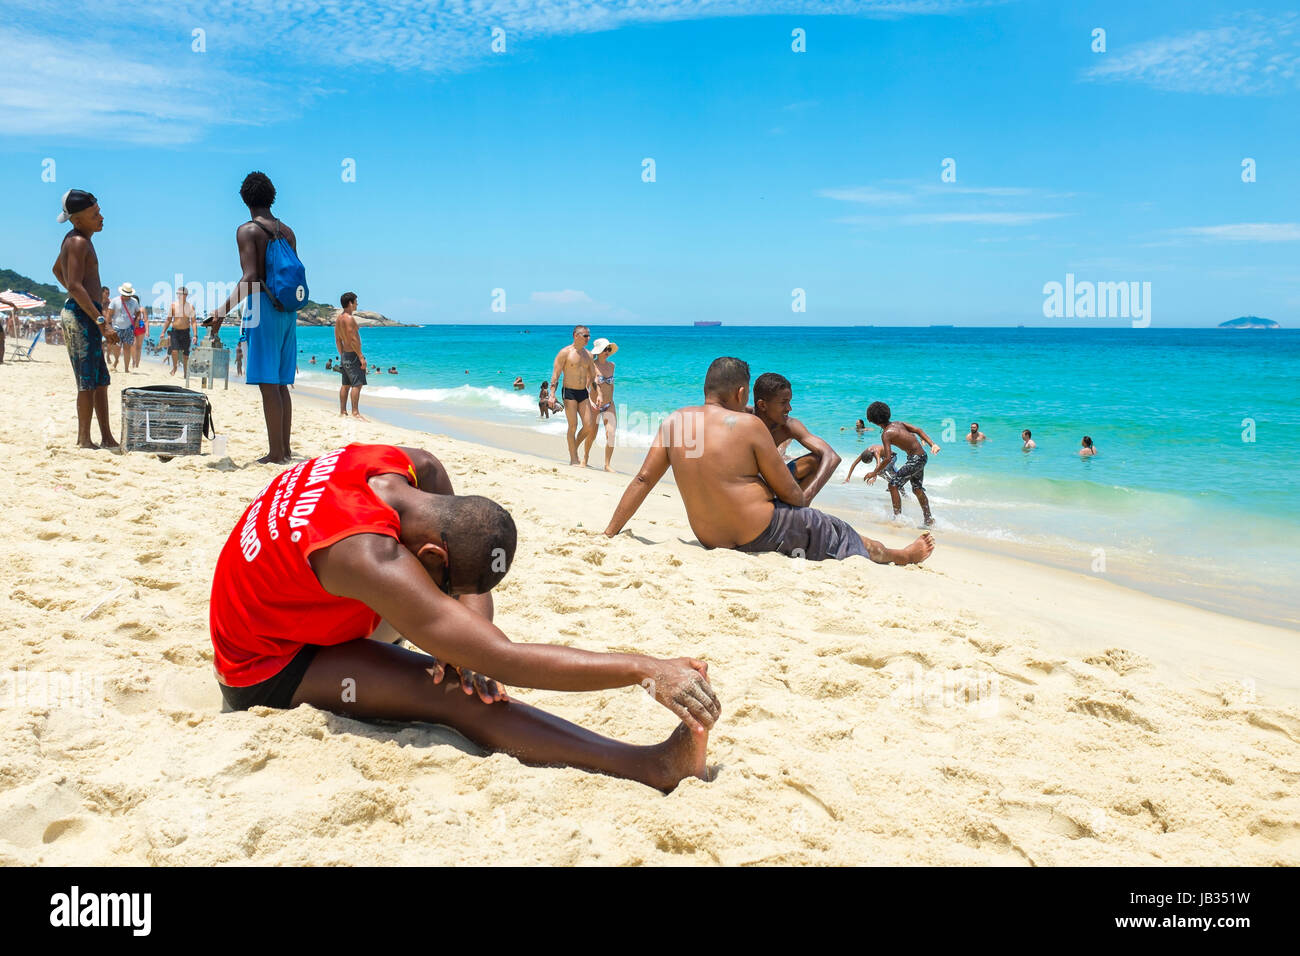 RIO DE JANEIRO - FEBRUARY 05, 2017: Muscular young carioca Brazilian lifeguard does his morning fitness routine - Stock Image